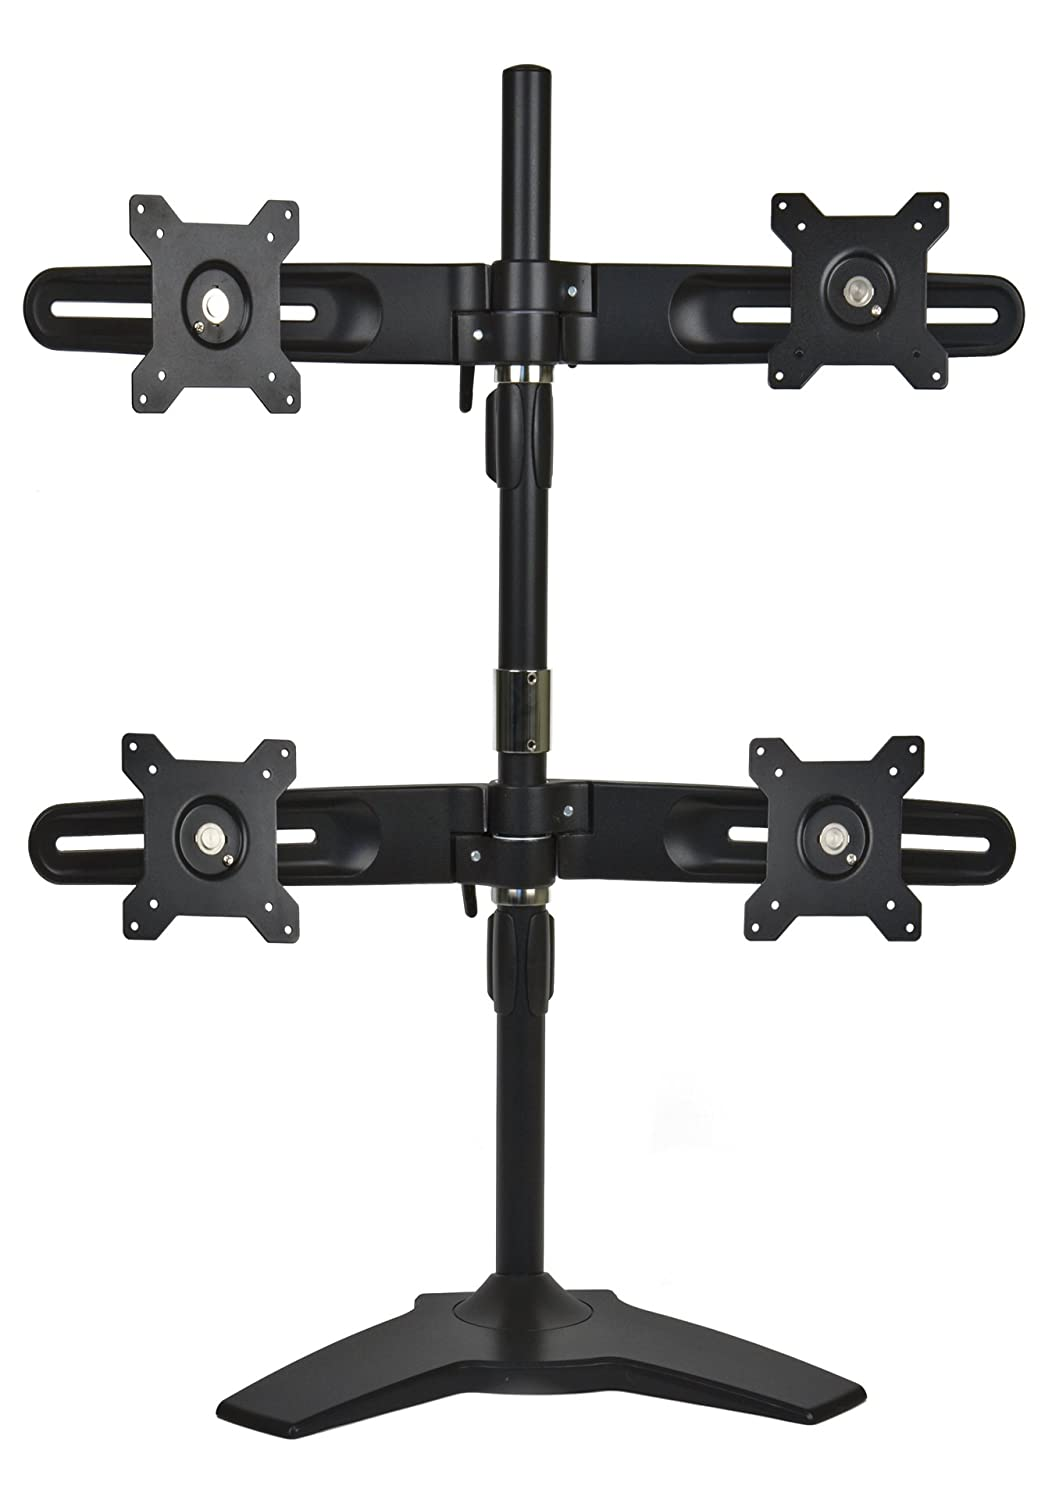 Taa Compliant. Supports Lcd Monitor 15in Up to 24in and Under 17.6 Lbs Per Arm. Planar 997-6035-00 Monitor Accessories